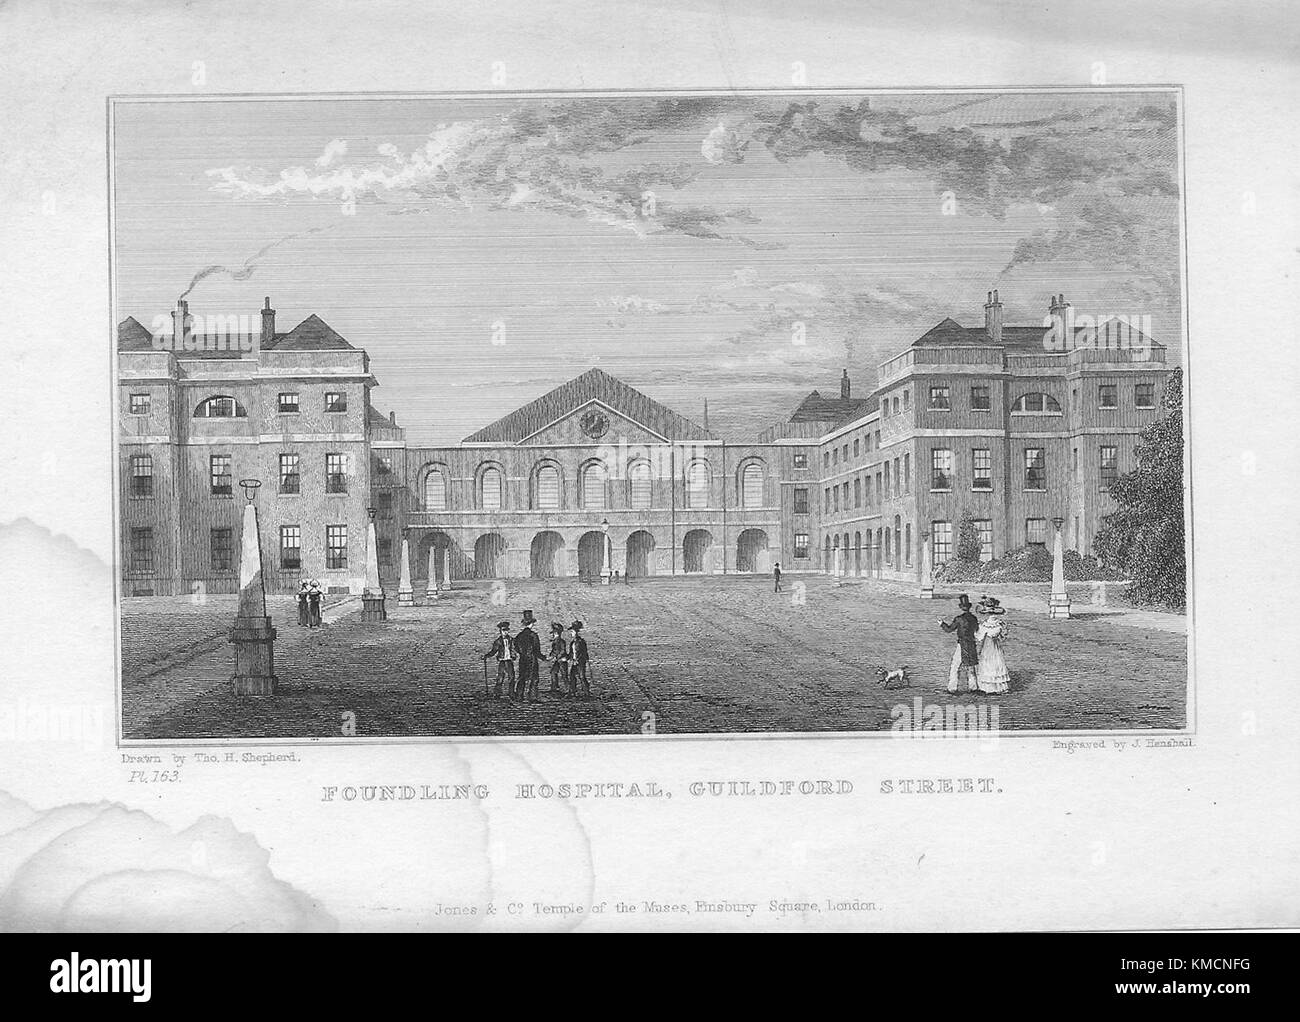 Simply matchless London foundling hospital consider